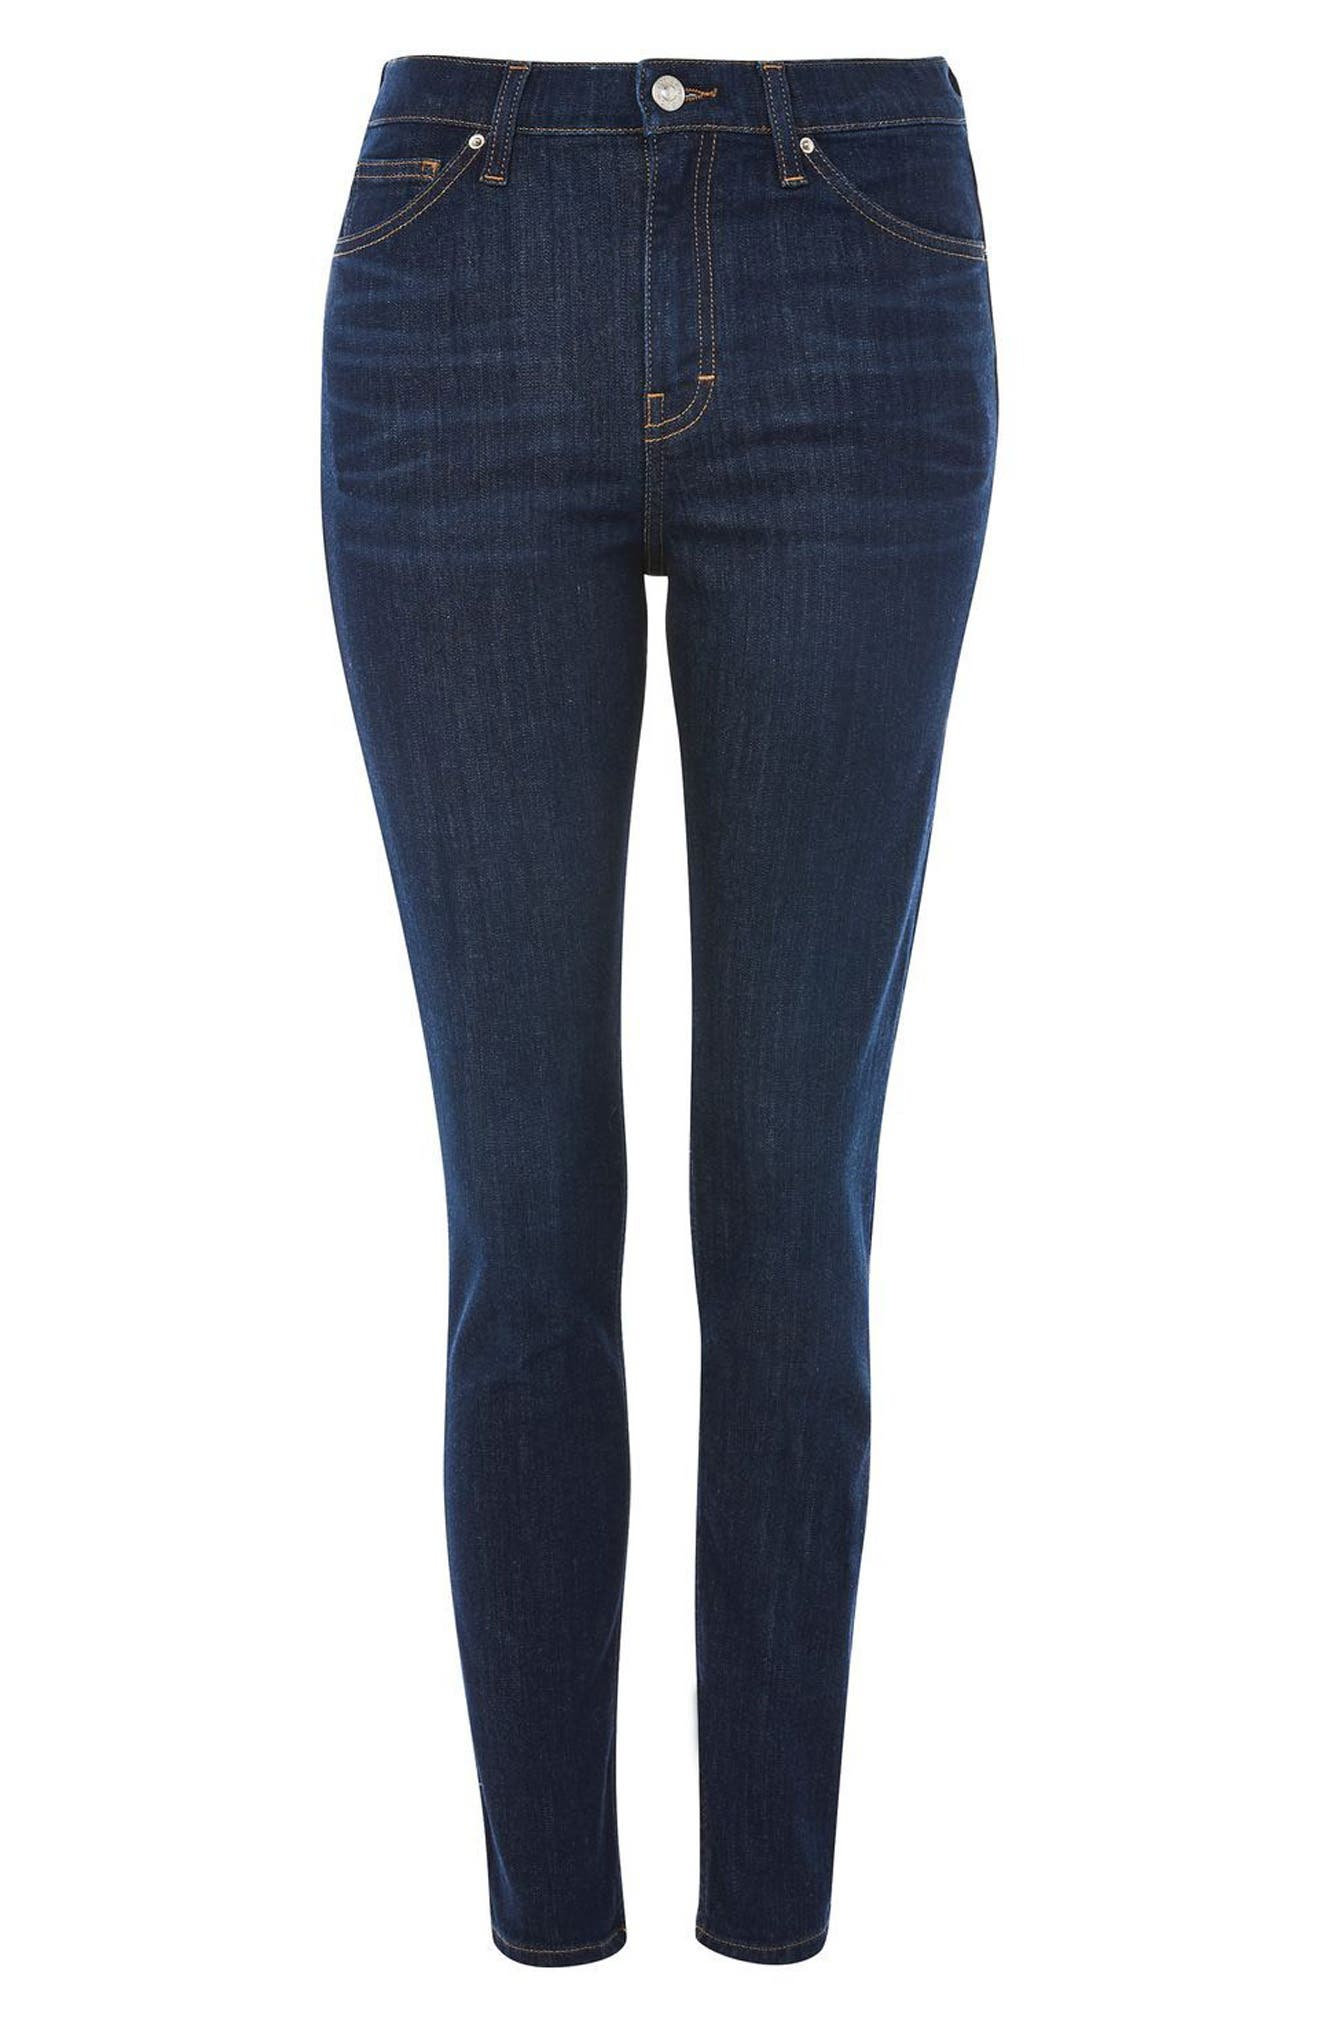 Jamie High Waist Ankle Skinny Jeans,                             Alternate thumbnail 4, color,                             410